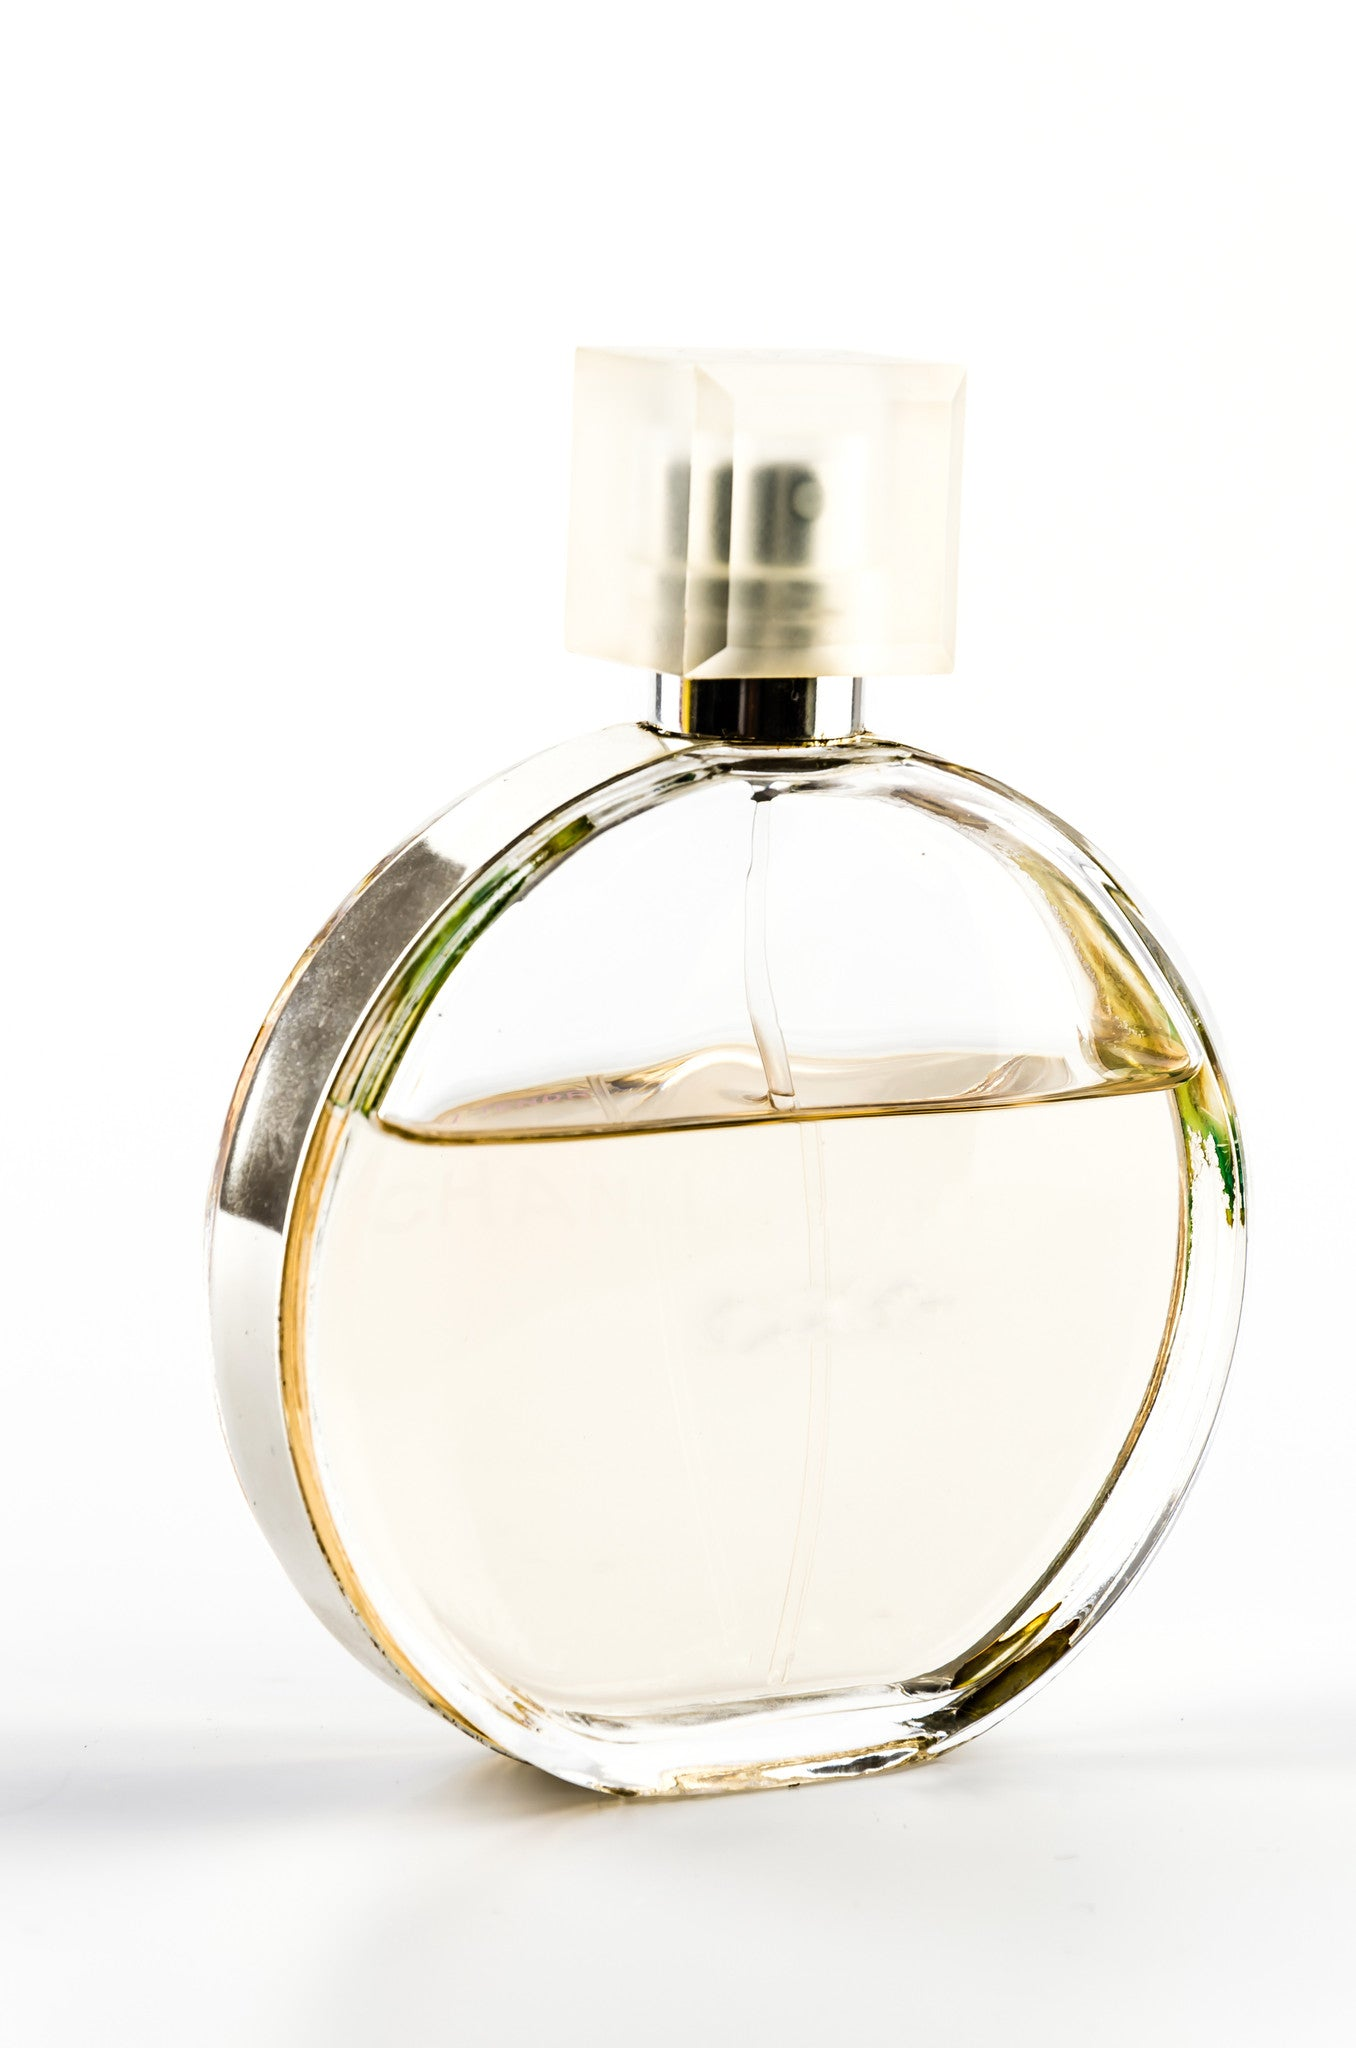 CREED WHITE FLOWERS FOR WOMEN 1.7fL Parfum $47 ~ Imported from French Perfumerys!